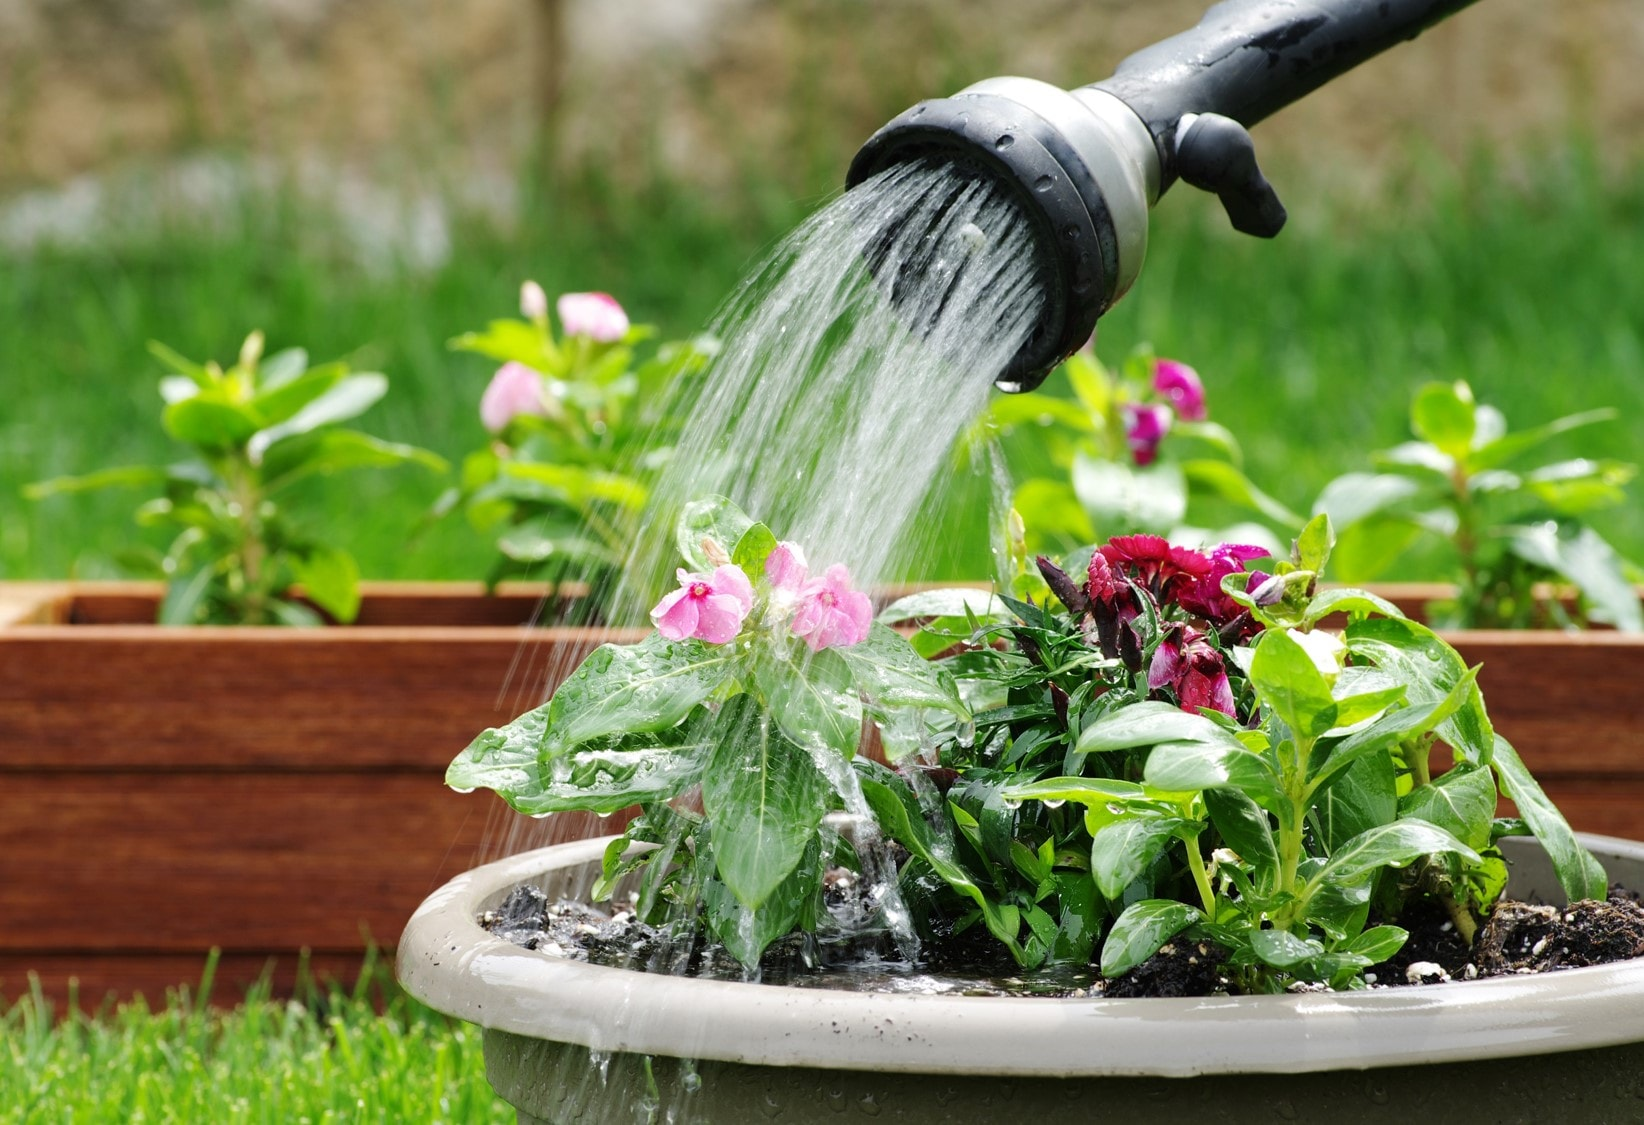 Bathing Pets, Watering Plants: How to Effortlessly Save Water While Performing Simple Tasks